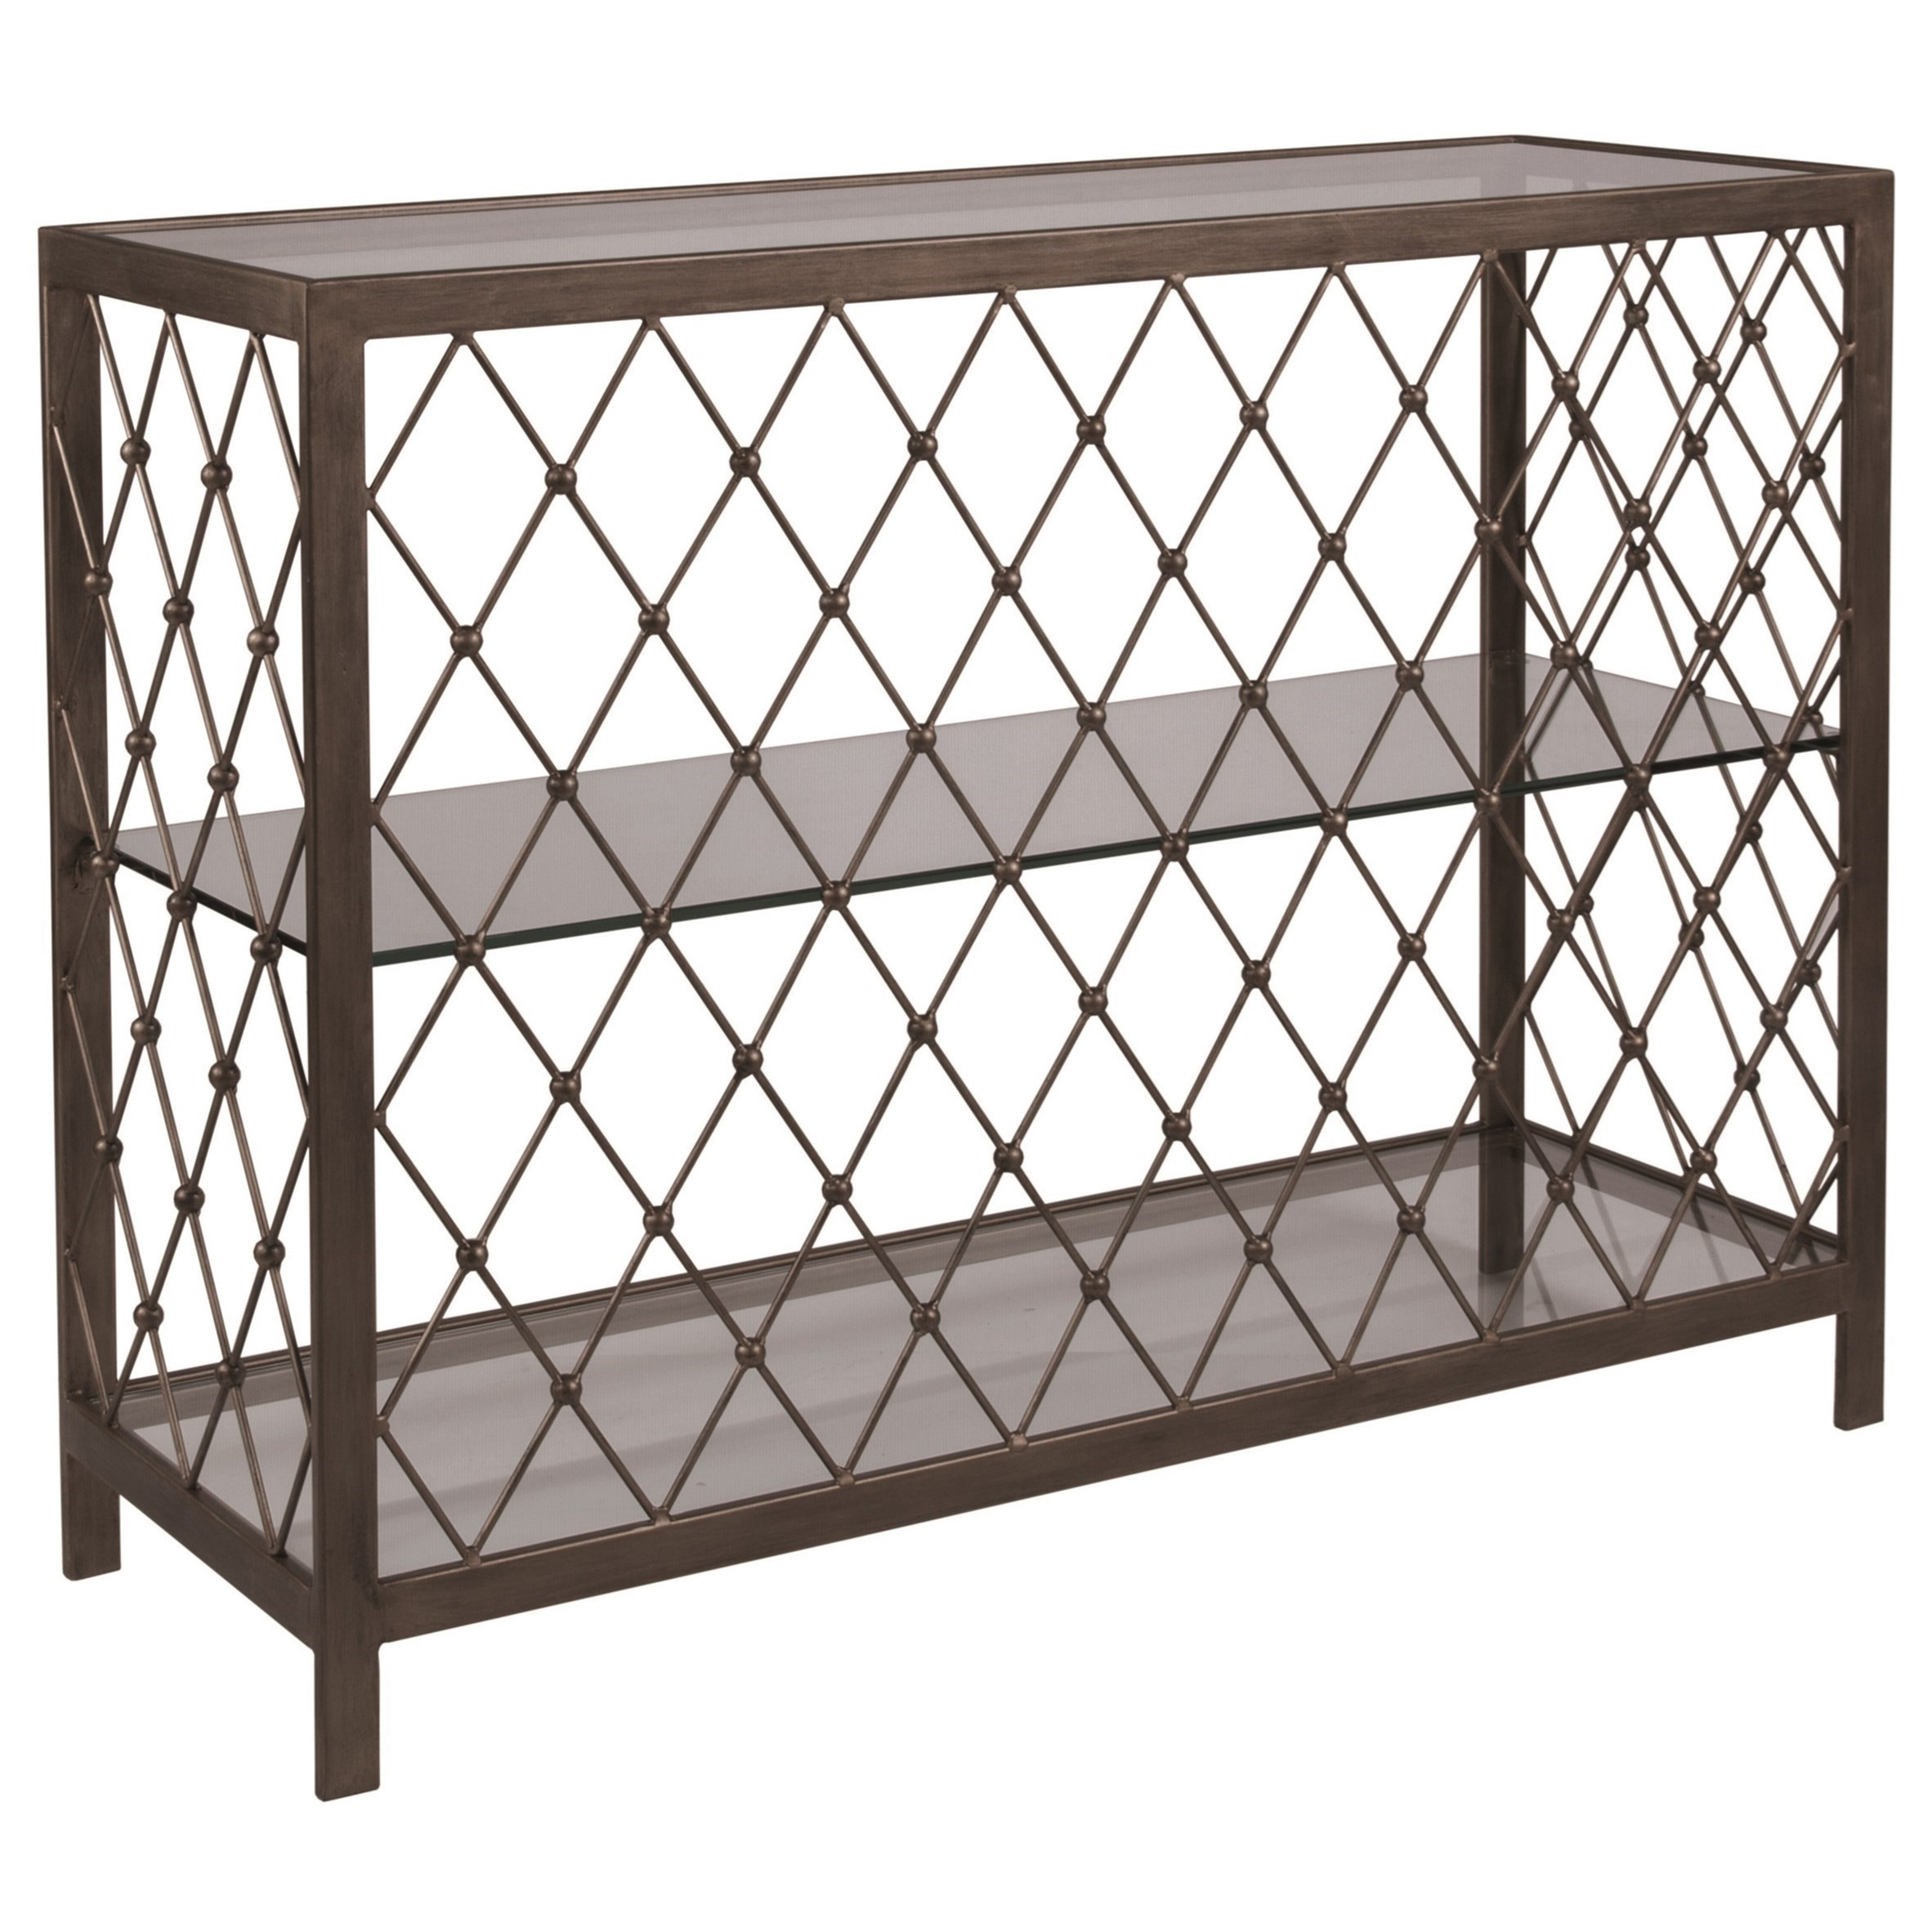 Metal Designs Royere Console Table by Artistica at Alison Craig Home Furnishings